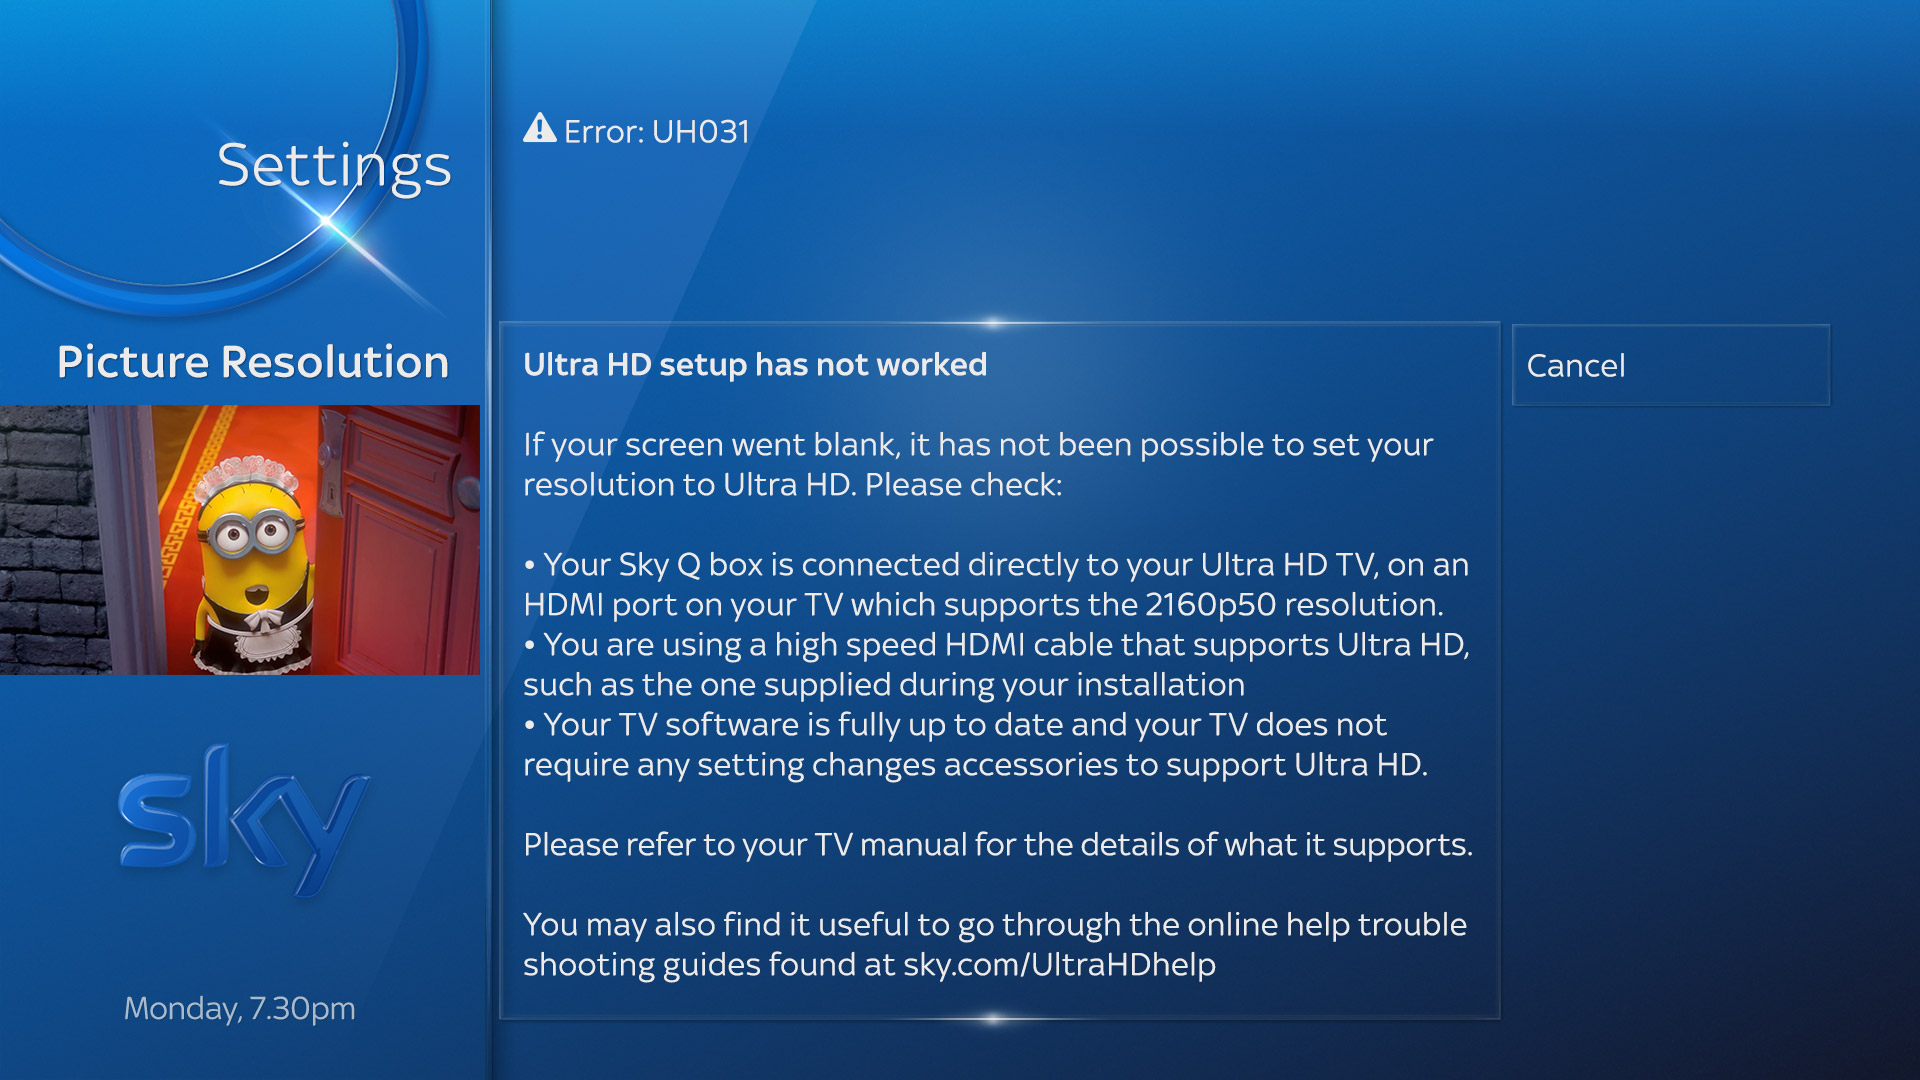 UH031 Ultra HD setup has not worked error message